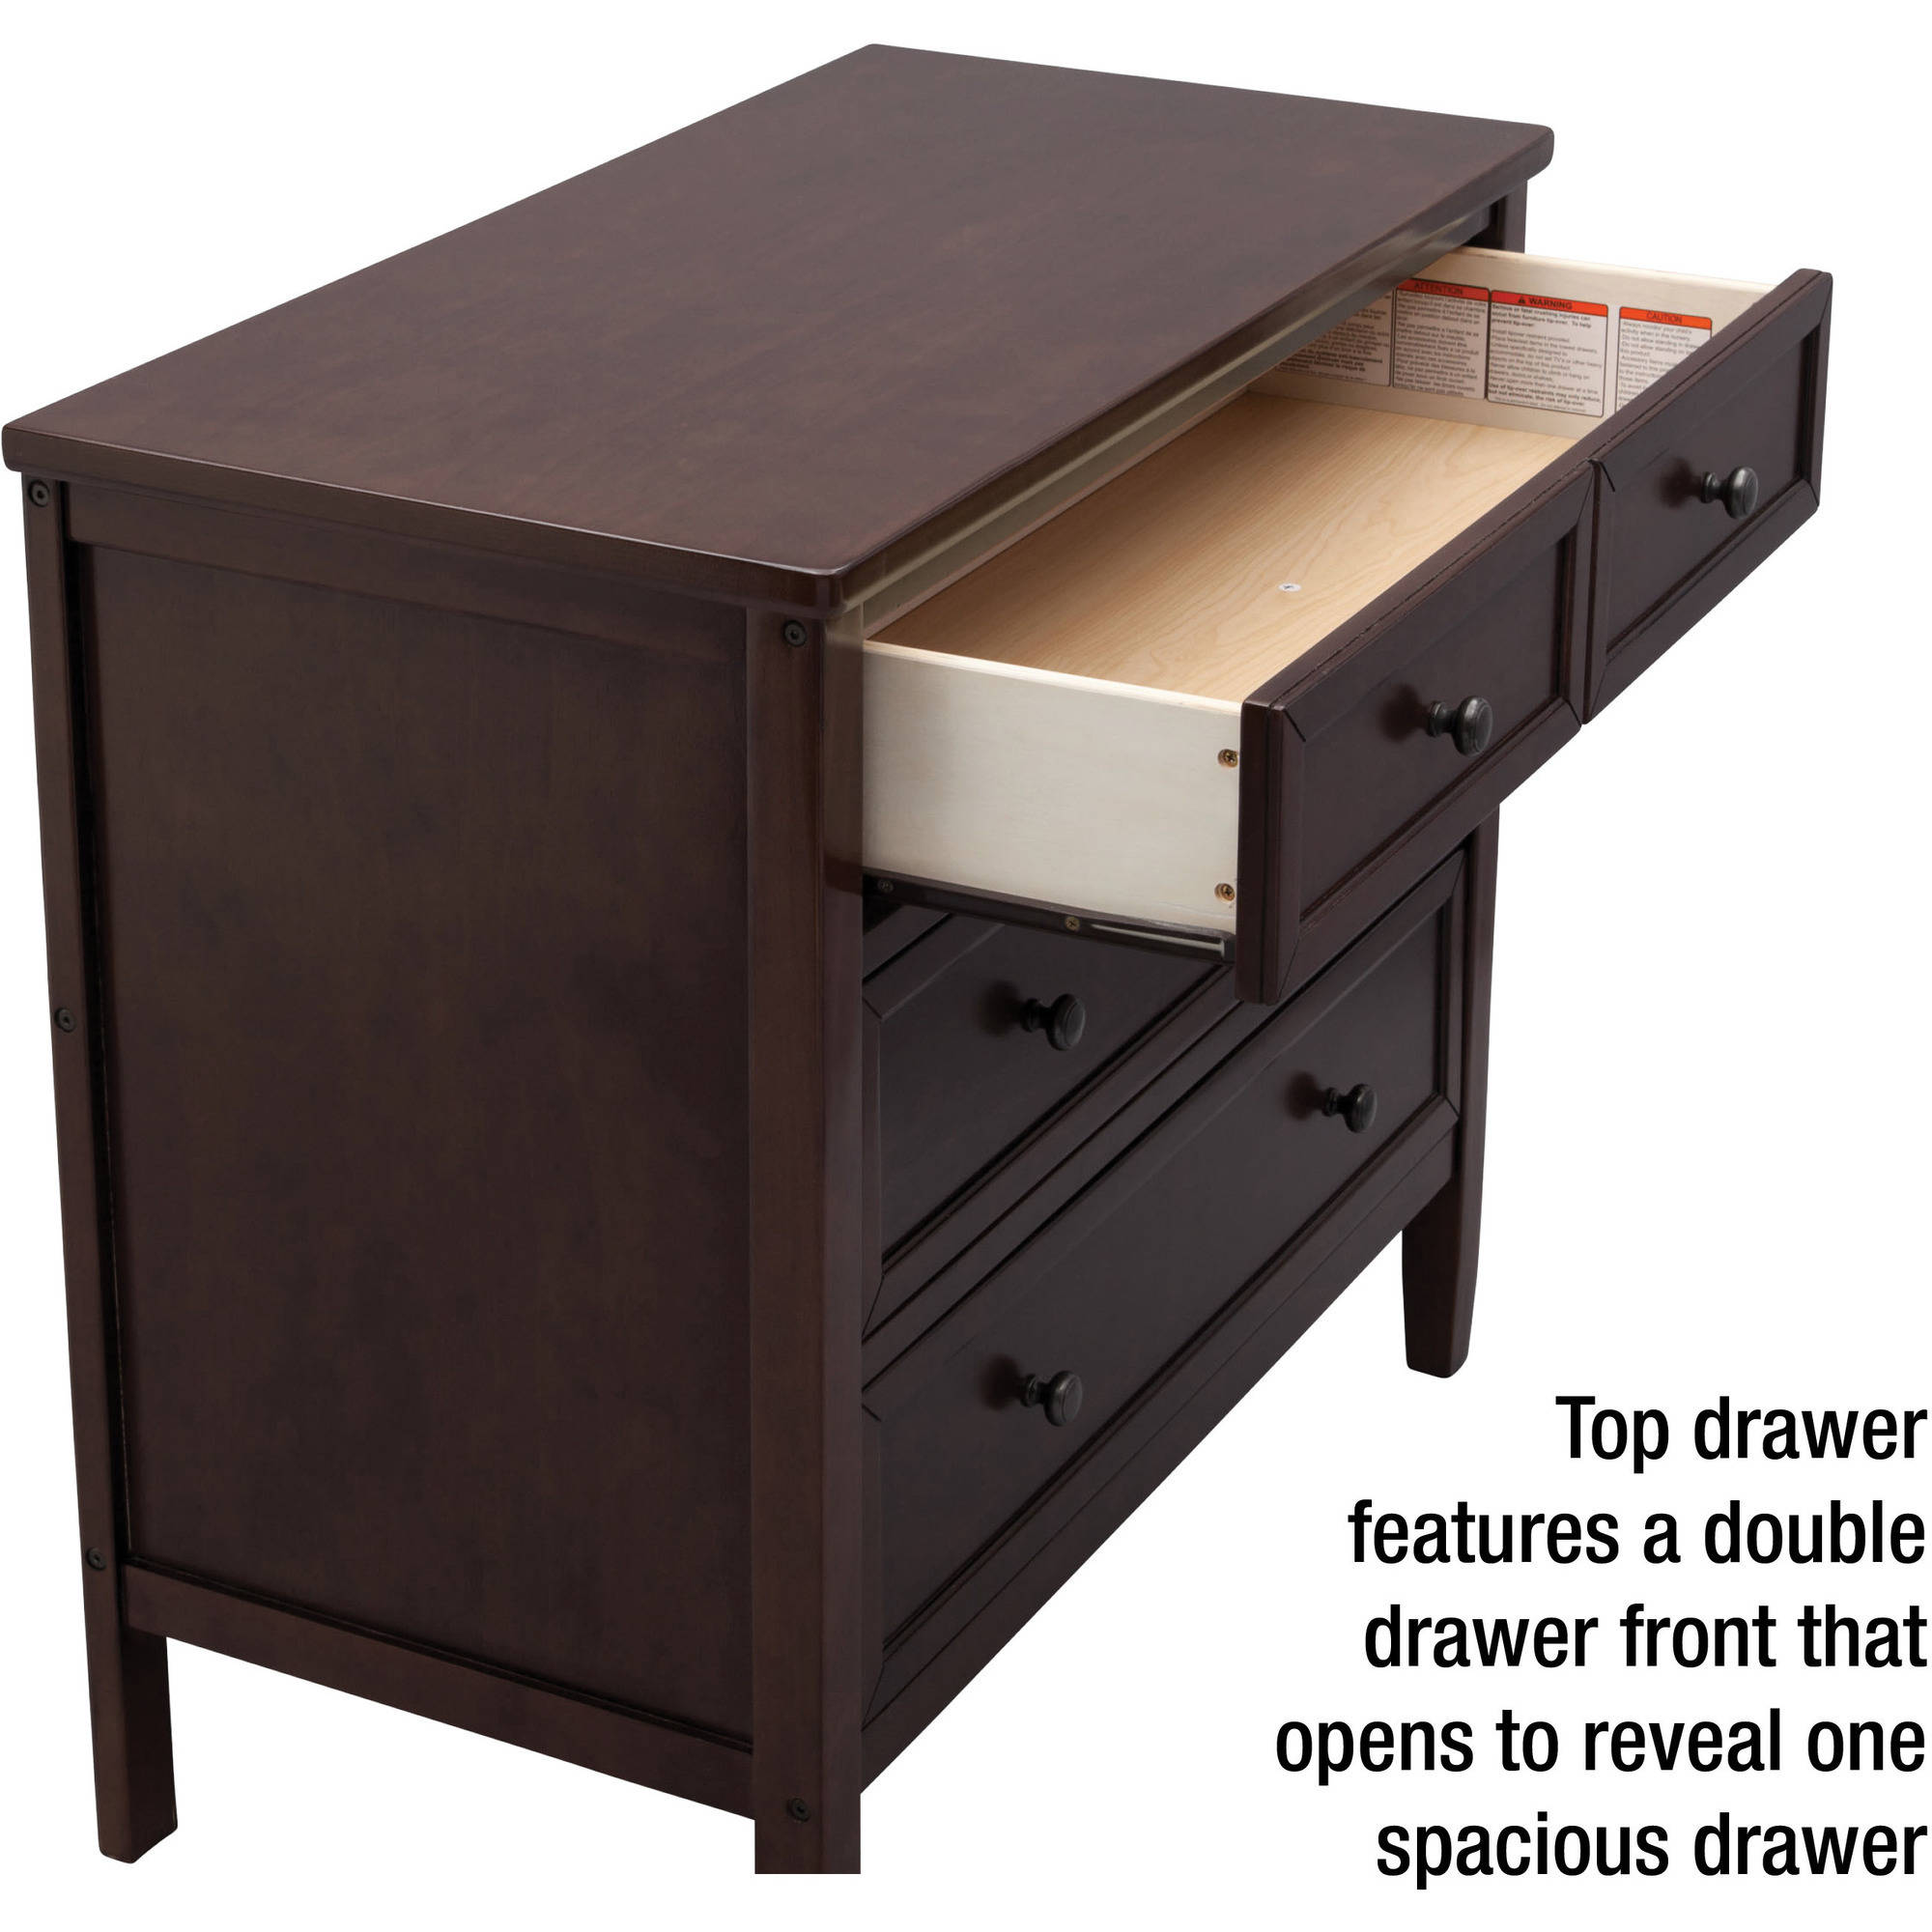 pdx wayfair austin sedgwick furniture drawer reviews chest design tracks trent